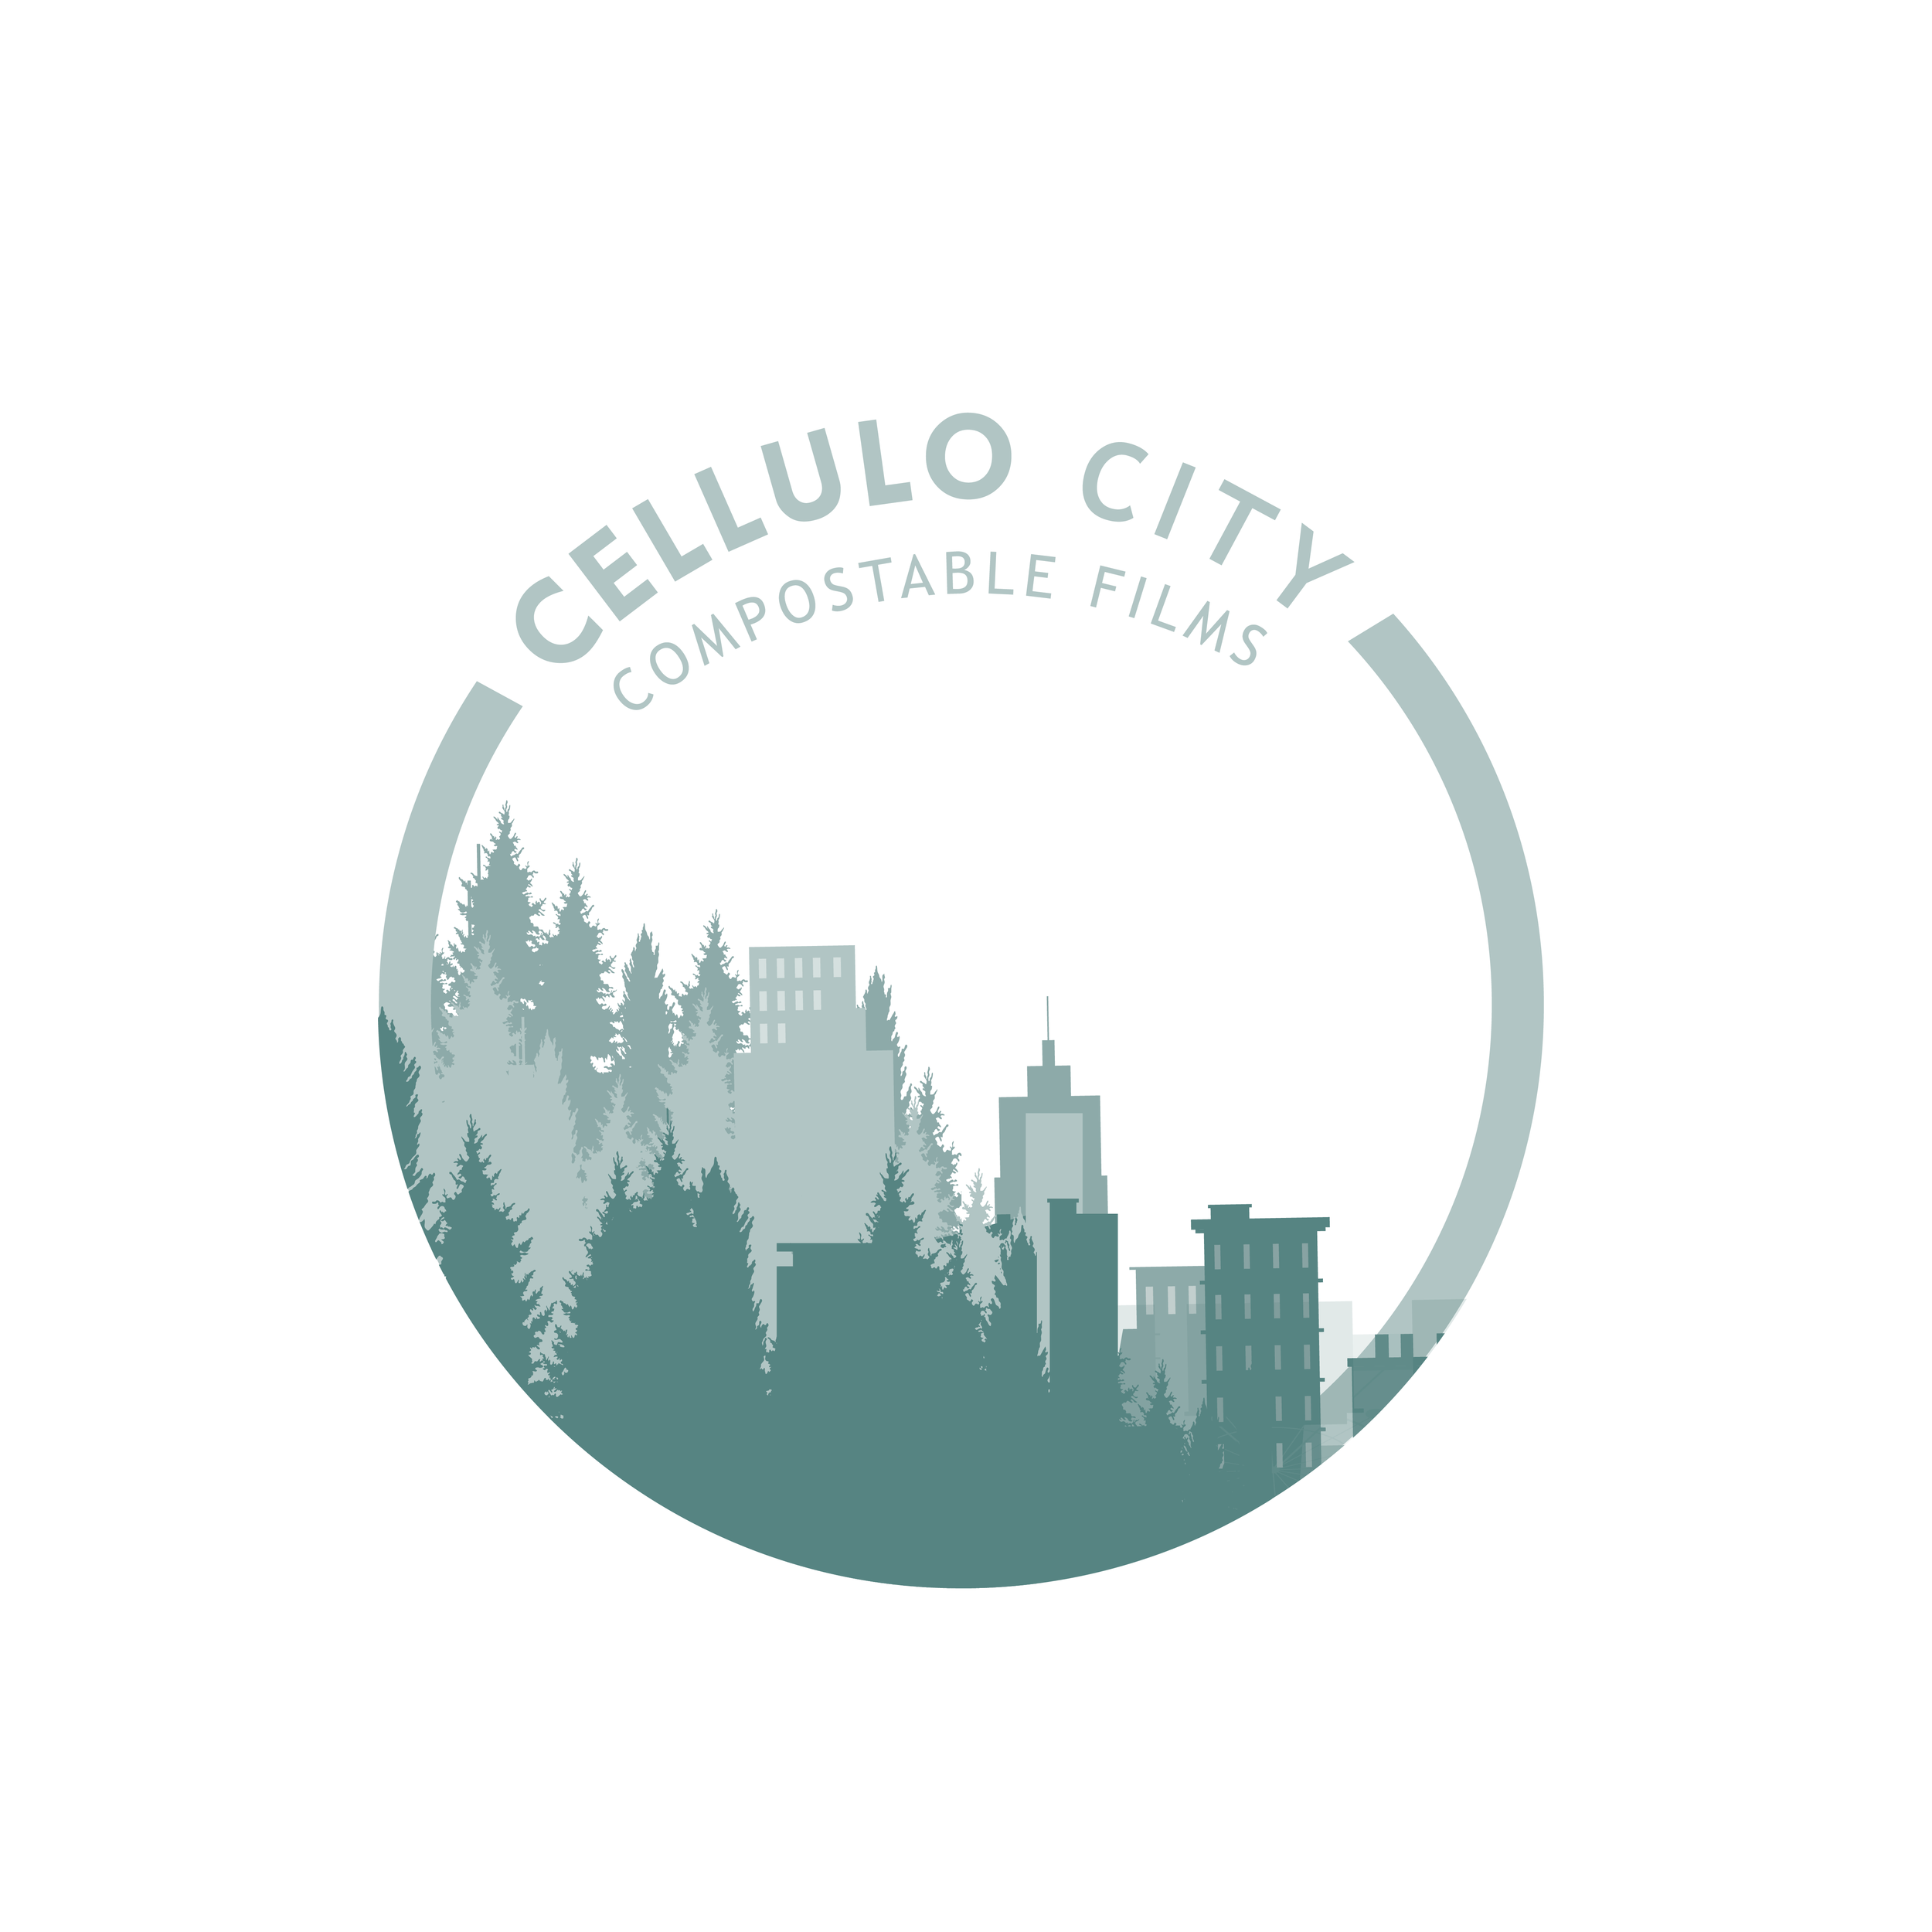 Cellulo City Logo 1.png